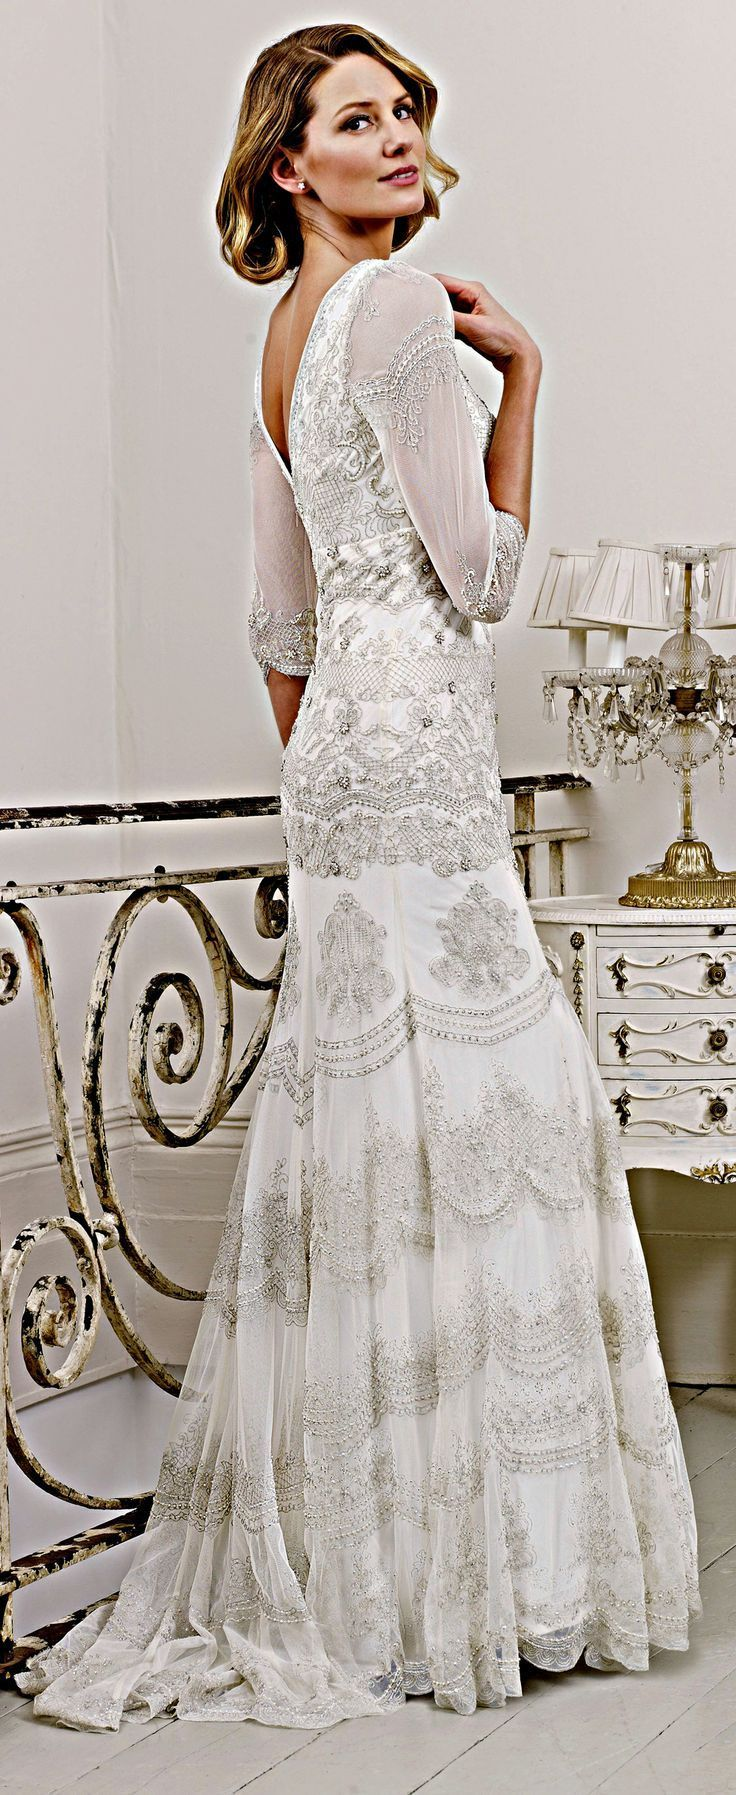 Wedding Dresses for 50 Year Old - Dresses for Wedding Reception ...